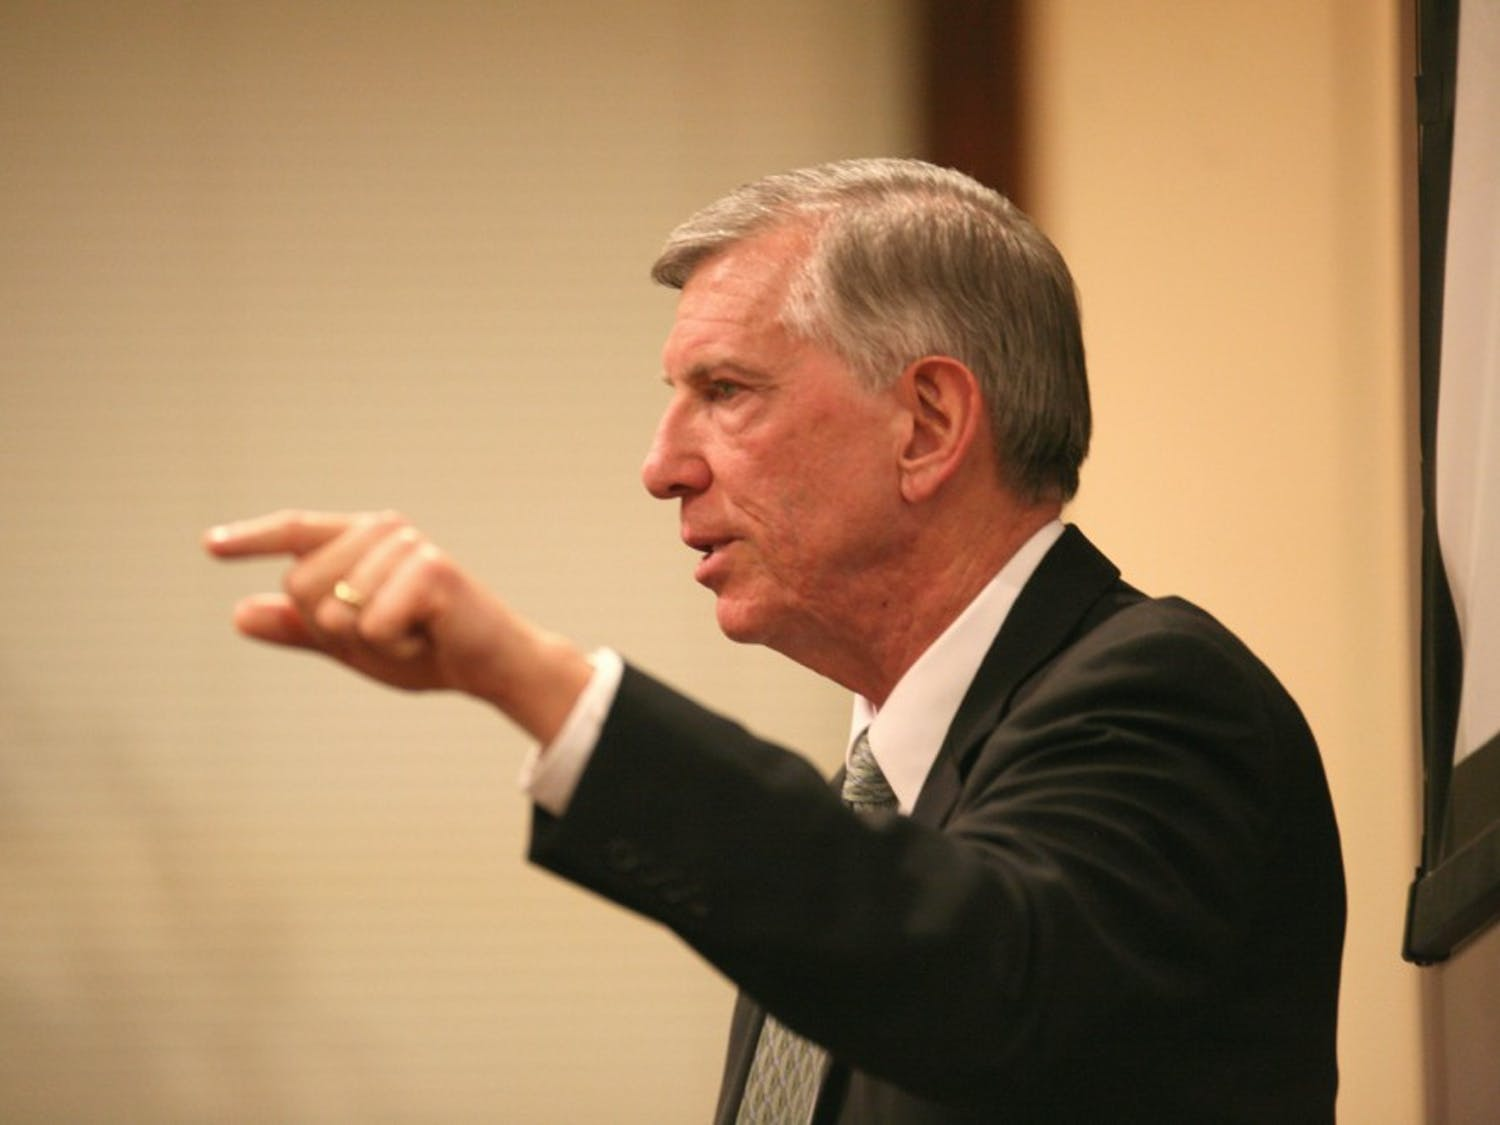 UNC President Tom Ross spoke and answered student questions Wednesday night in Carroll Hall concerning the  February 10 Board of Governors meeting to vote on a proposed 8.8 percent tuition increase for 2012-13 and 4.2 percent in 2013-14.